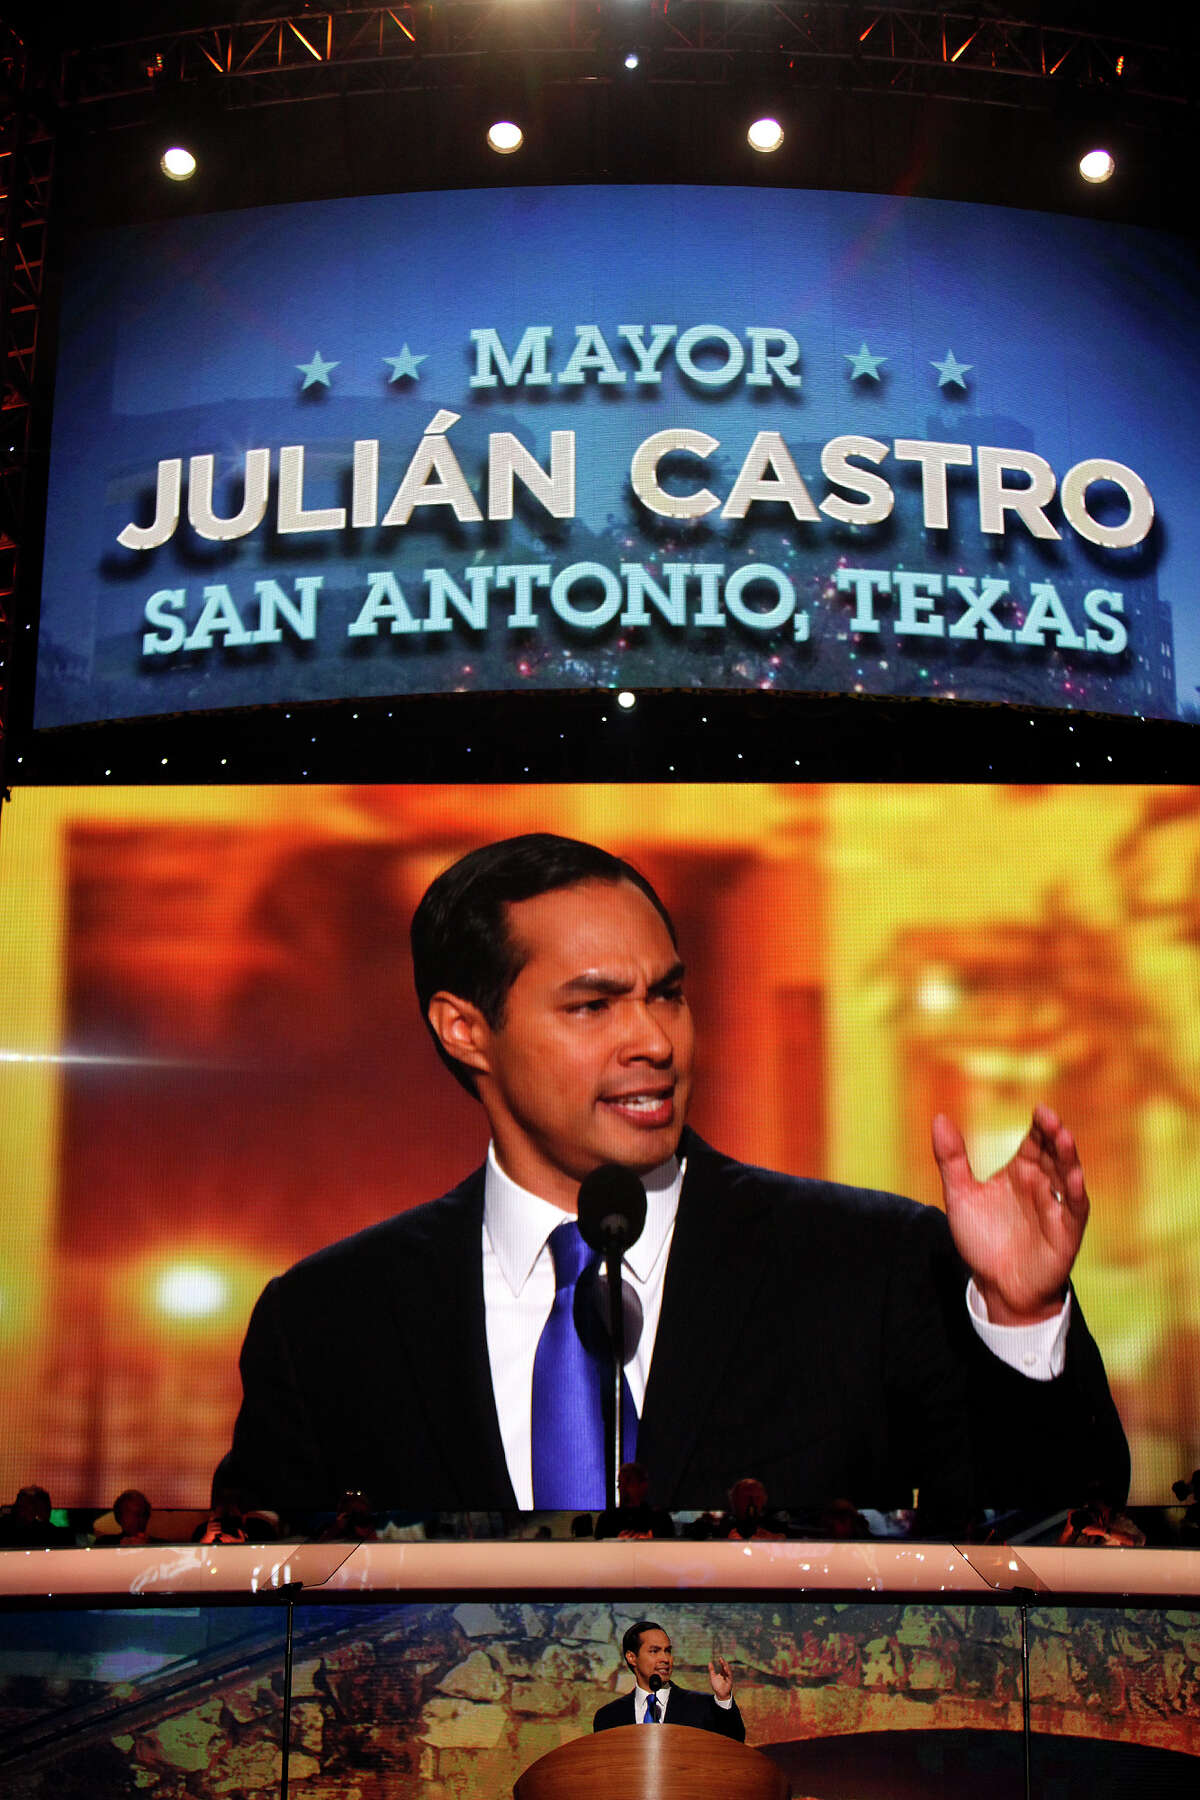 Mayor Julian Castro delivers the keynote address on the first night of the Democratic National Convention at Time Warner Cable Arena in Charlotte, NC on Tuesday, Sept. 4, 2012.